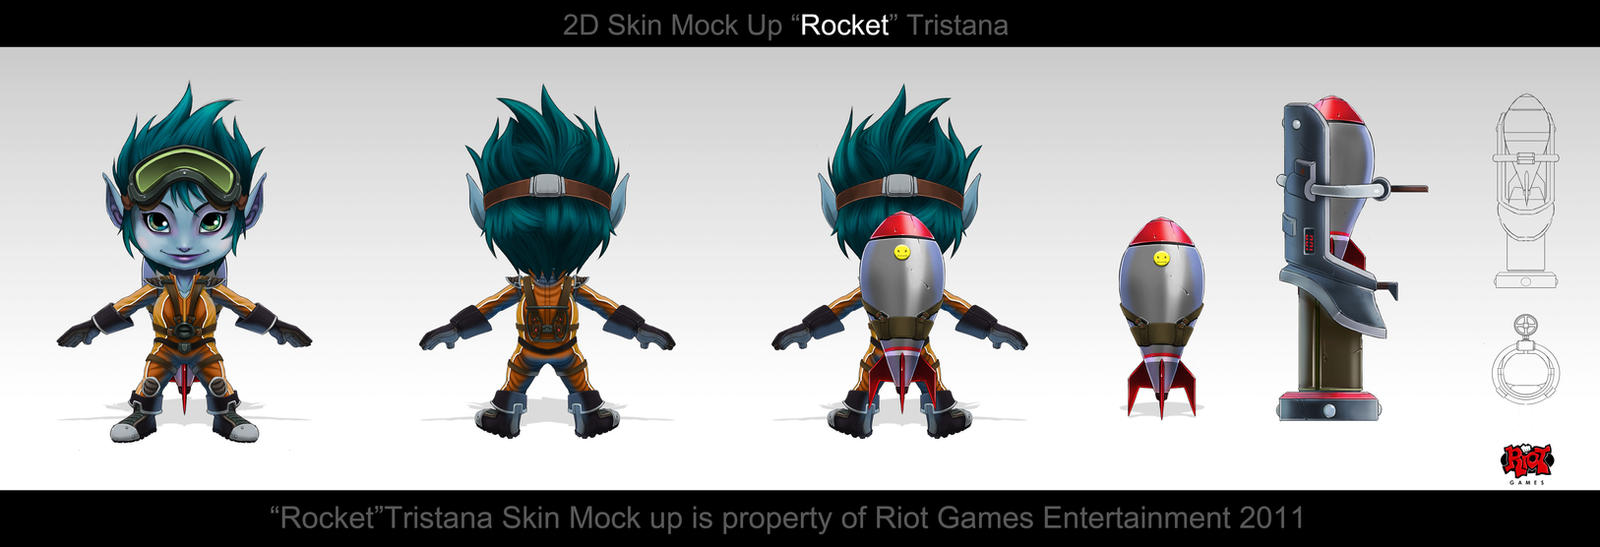 Rocket_Girl_Tristana by The-Bravo-Ray